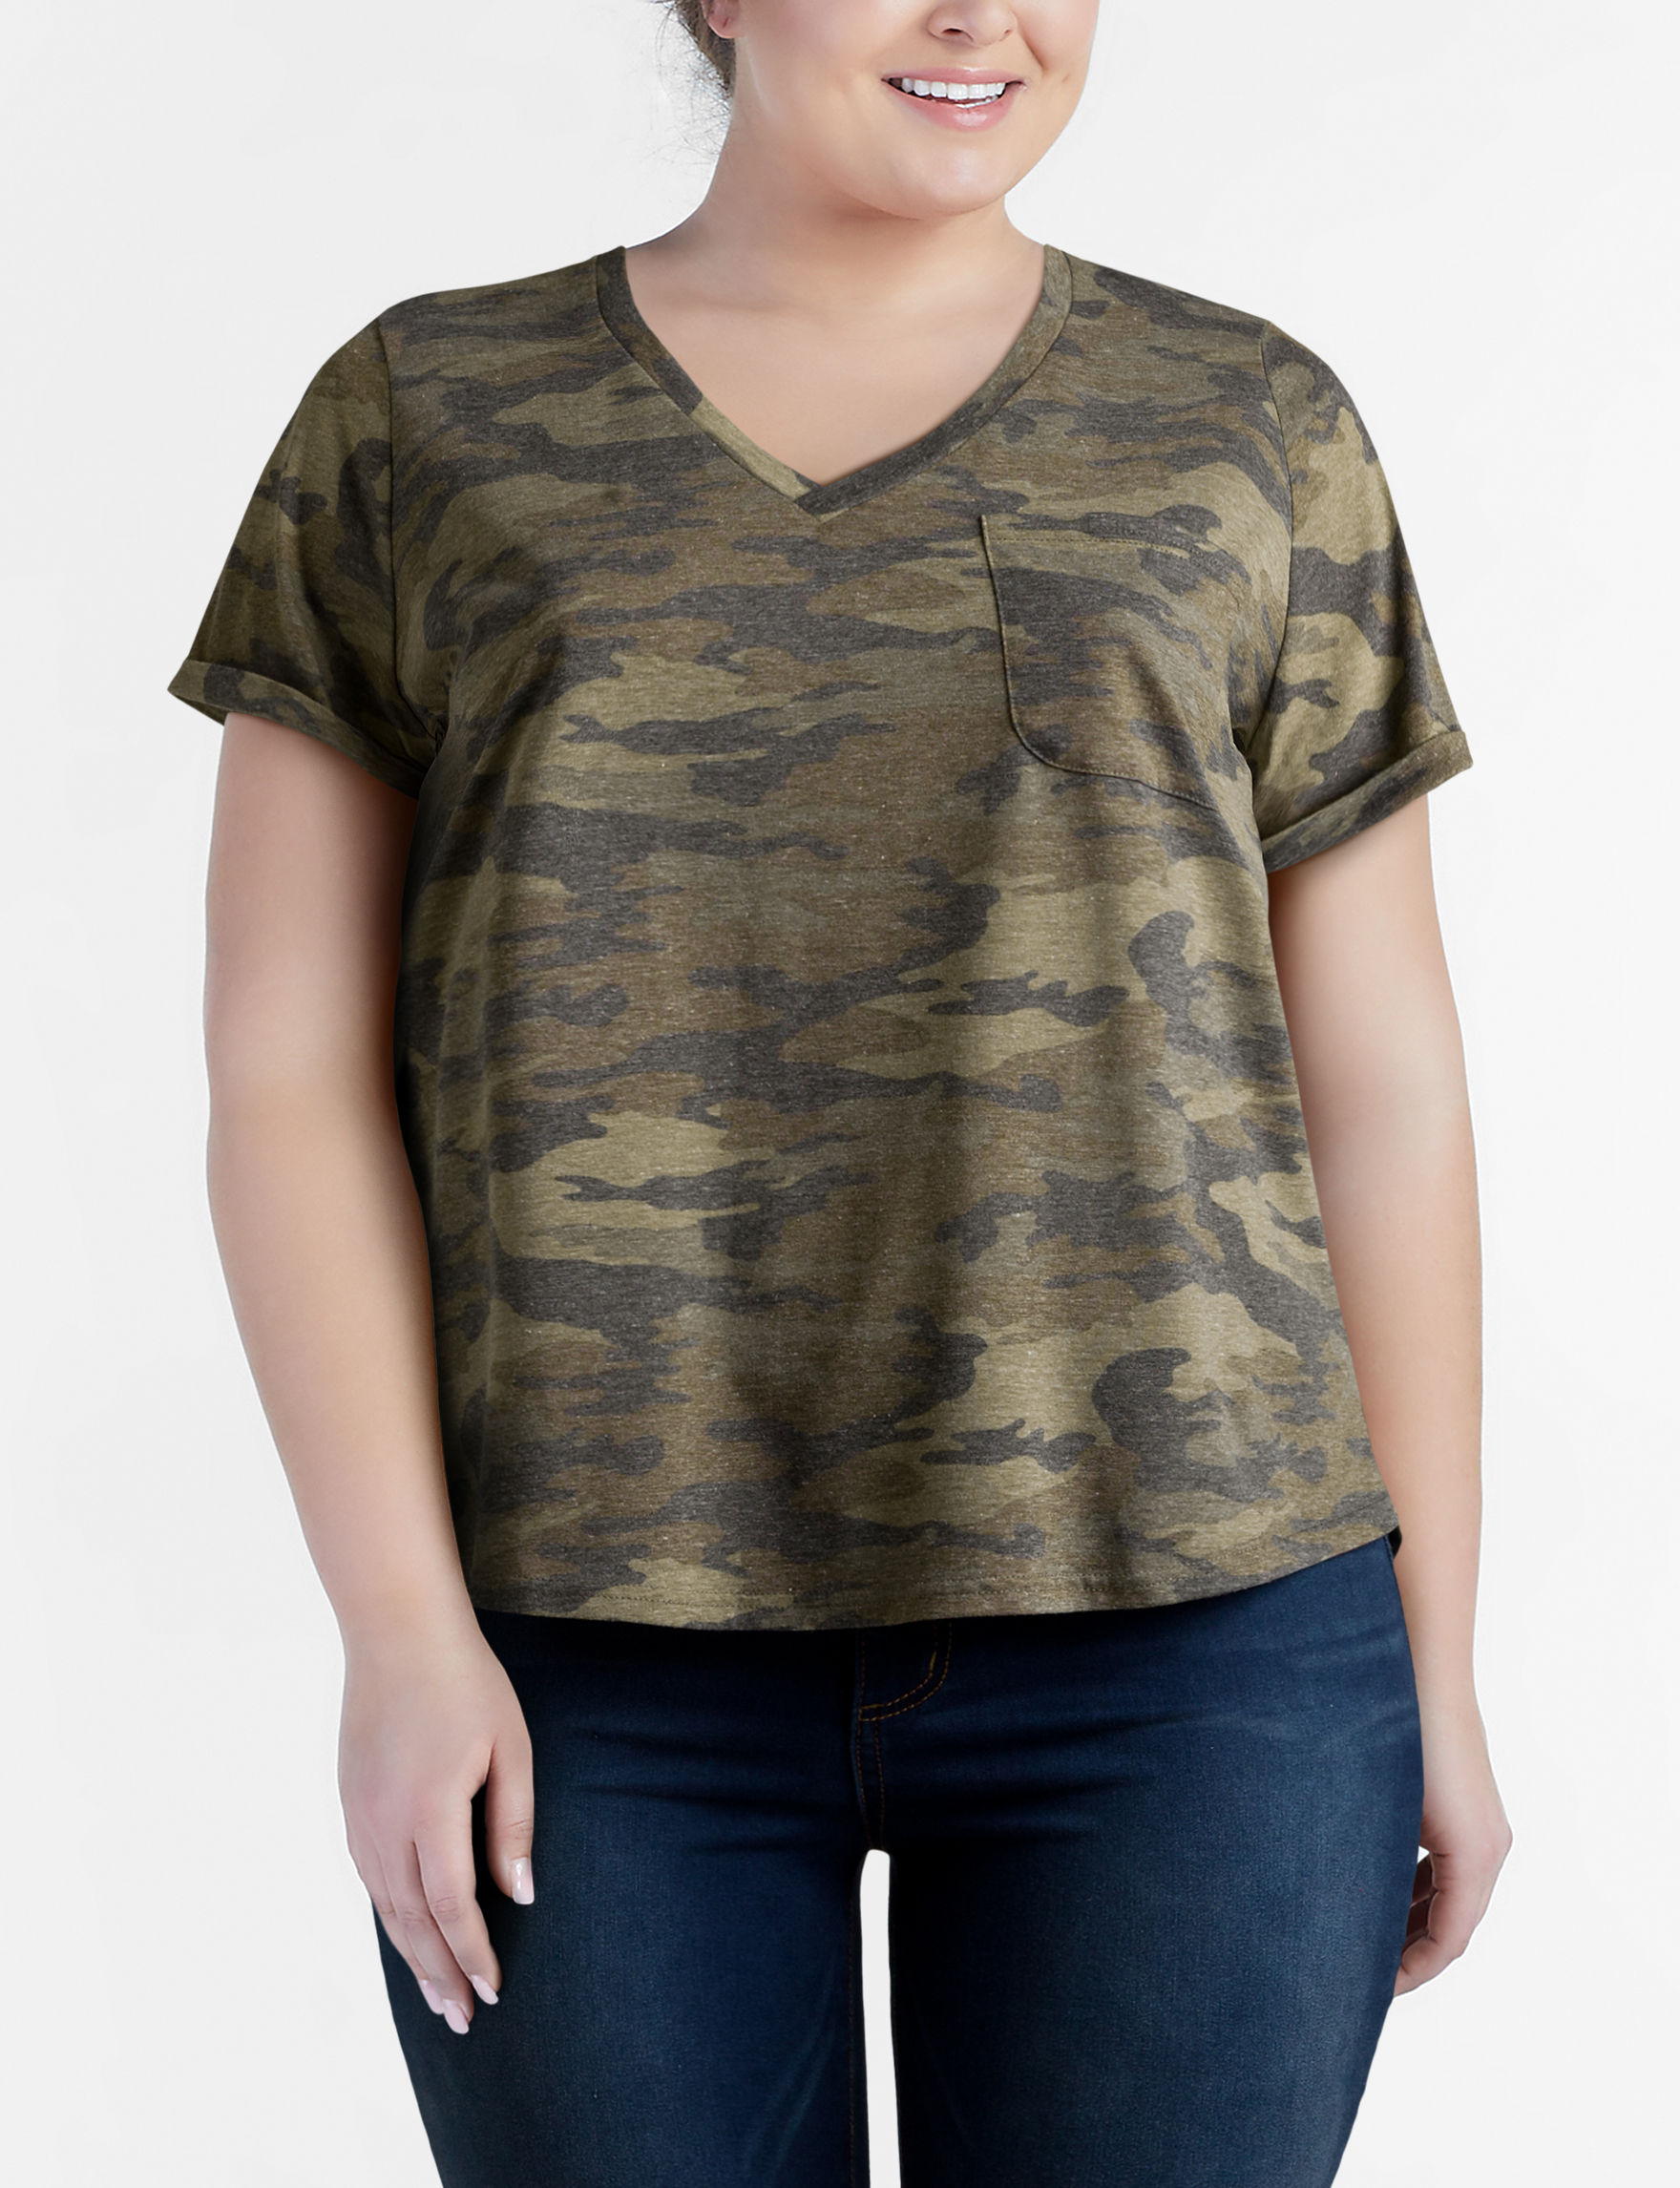 Justify Juniors-plus Camo Print Pocket Top | Stage Stores